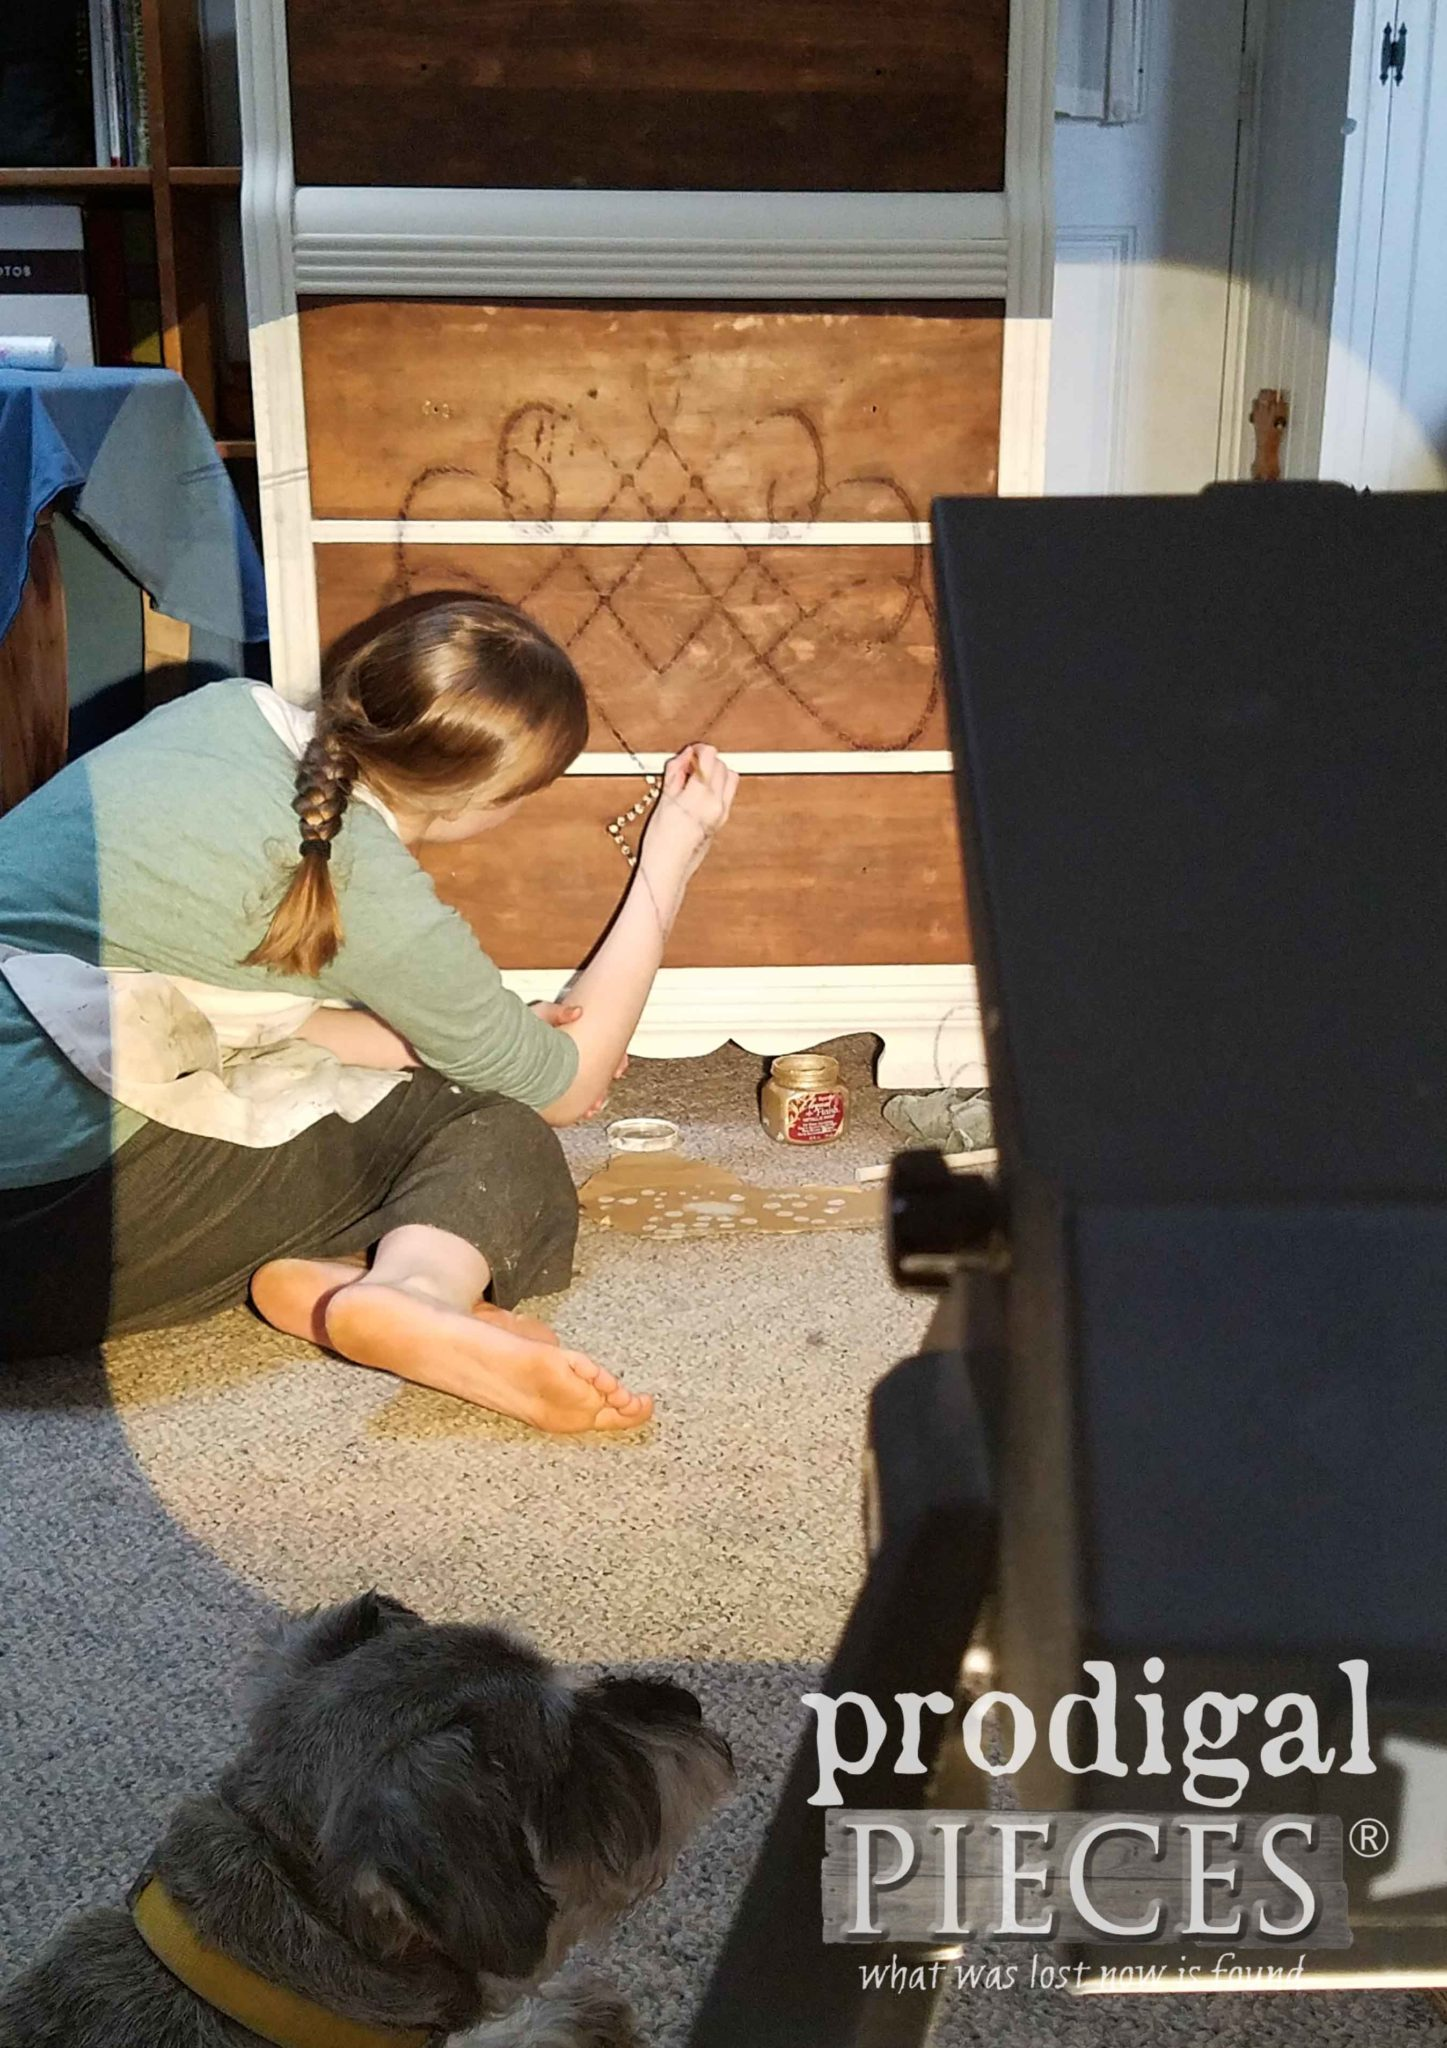 Projecting Filigree Graphic onto Chest of Drawers with School Projector   prodigalpieces.com